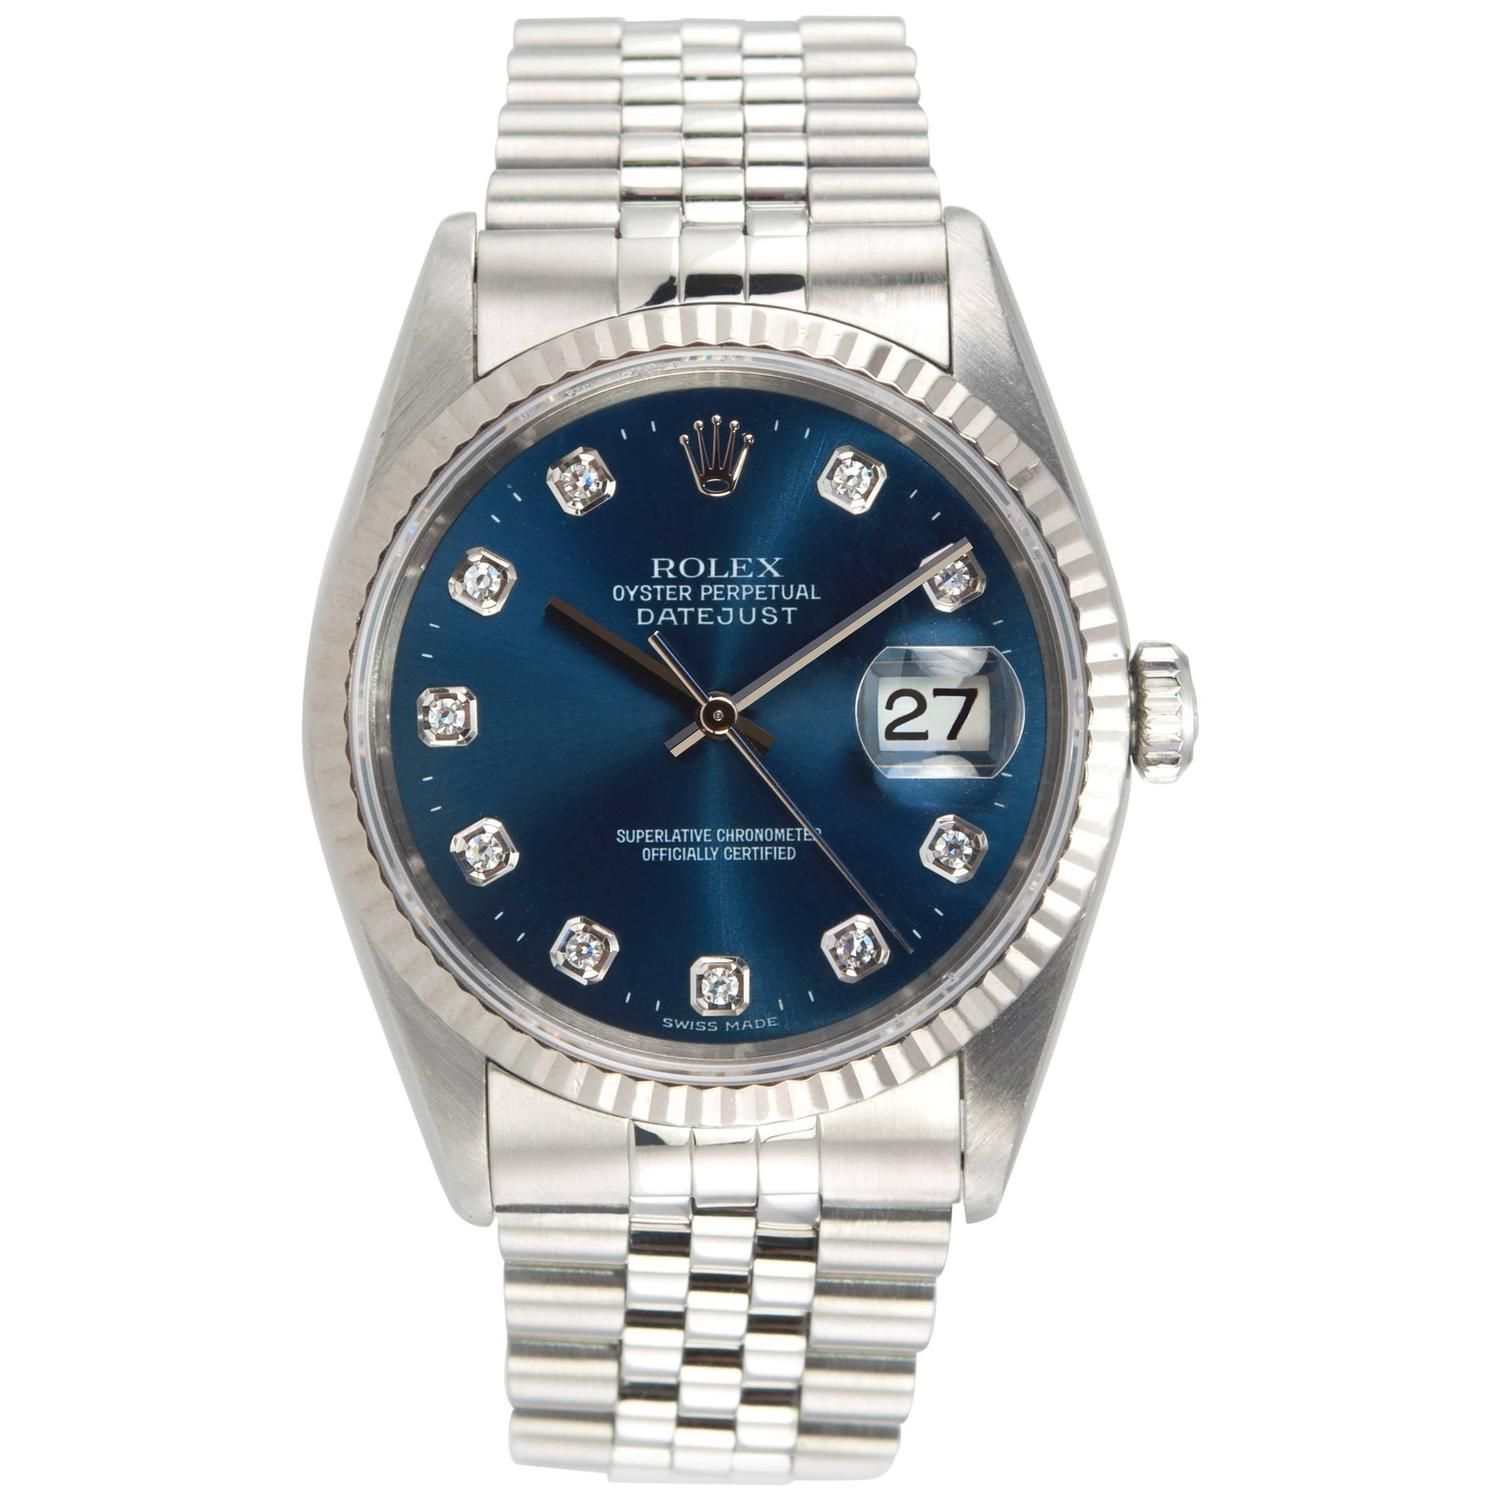 Rolex Stainless Steel Diamond Blue Dial DateJust Wristwatch Ref 1623 | From a unique collection of vintage wrist watches at https://www.1stdibs.com/jewelry/watches/wrist-watches/